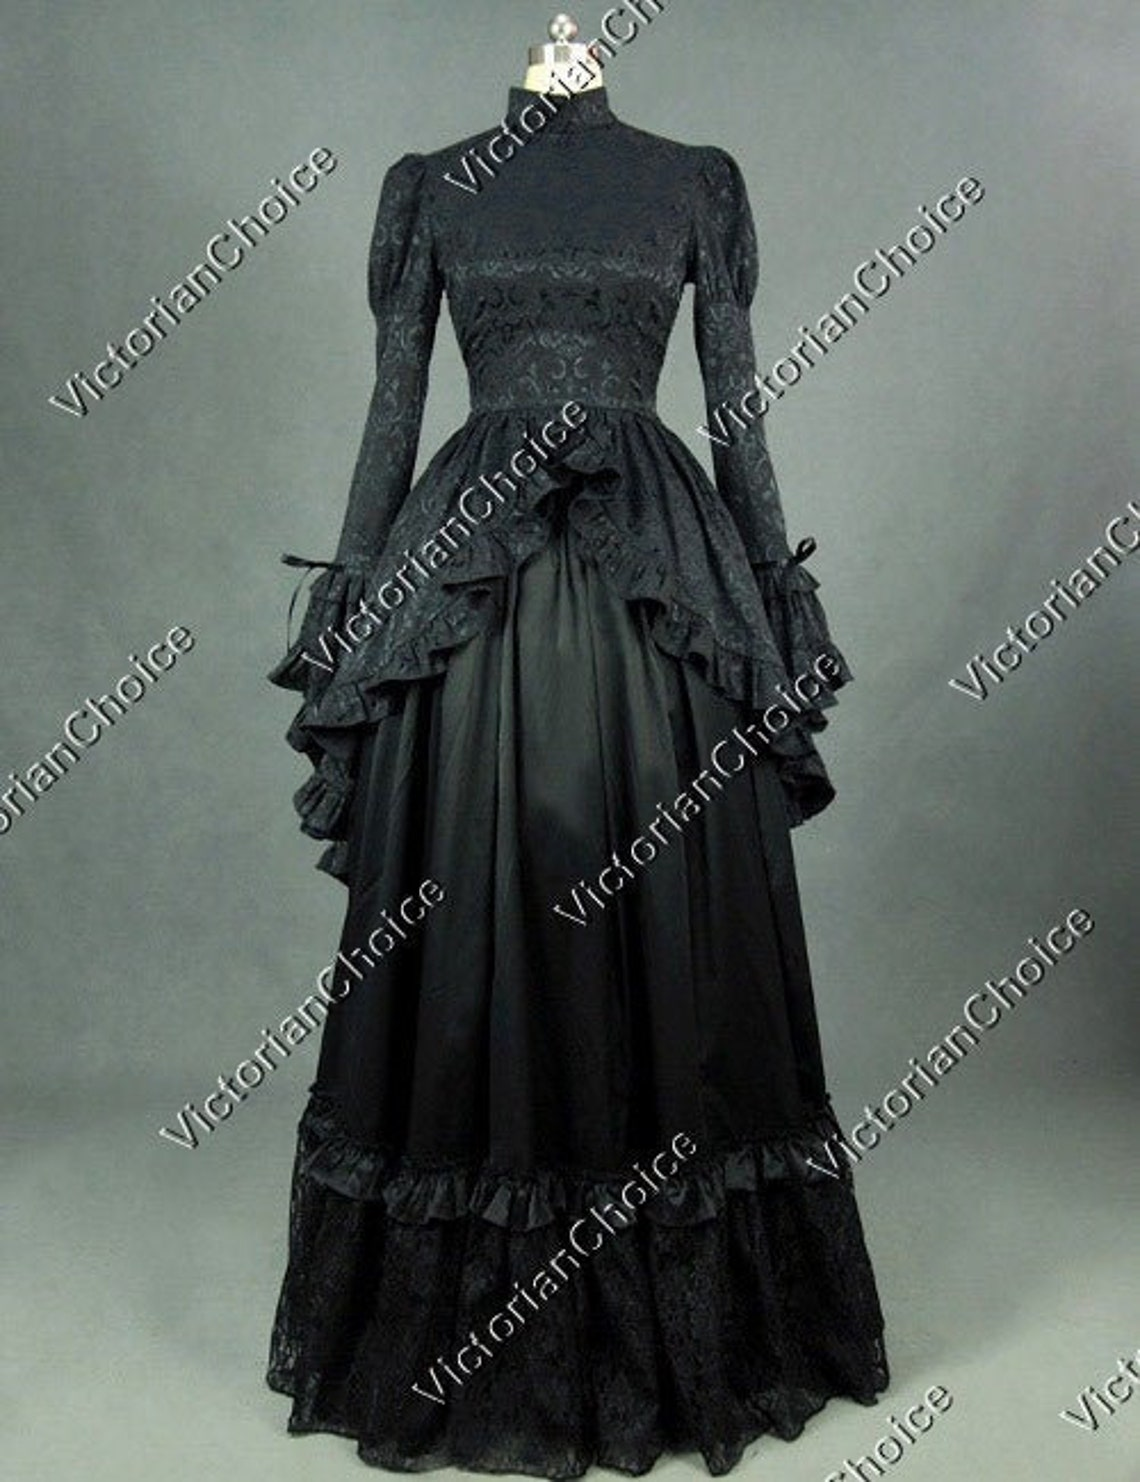 Victorian Dresses | Victorian Ballgowns | Victorian Clothing     Gothic Victorian Edwardian Black Brocade Dress Ball Gown Black Miss of Darkness Costume Adams Family Morticia Addams Costume for Halloween $195.00 AT vintagedancer.com